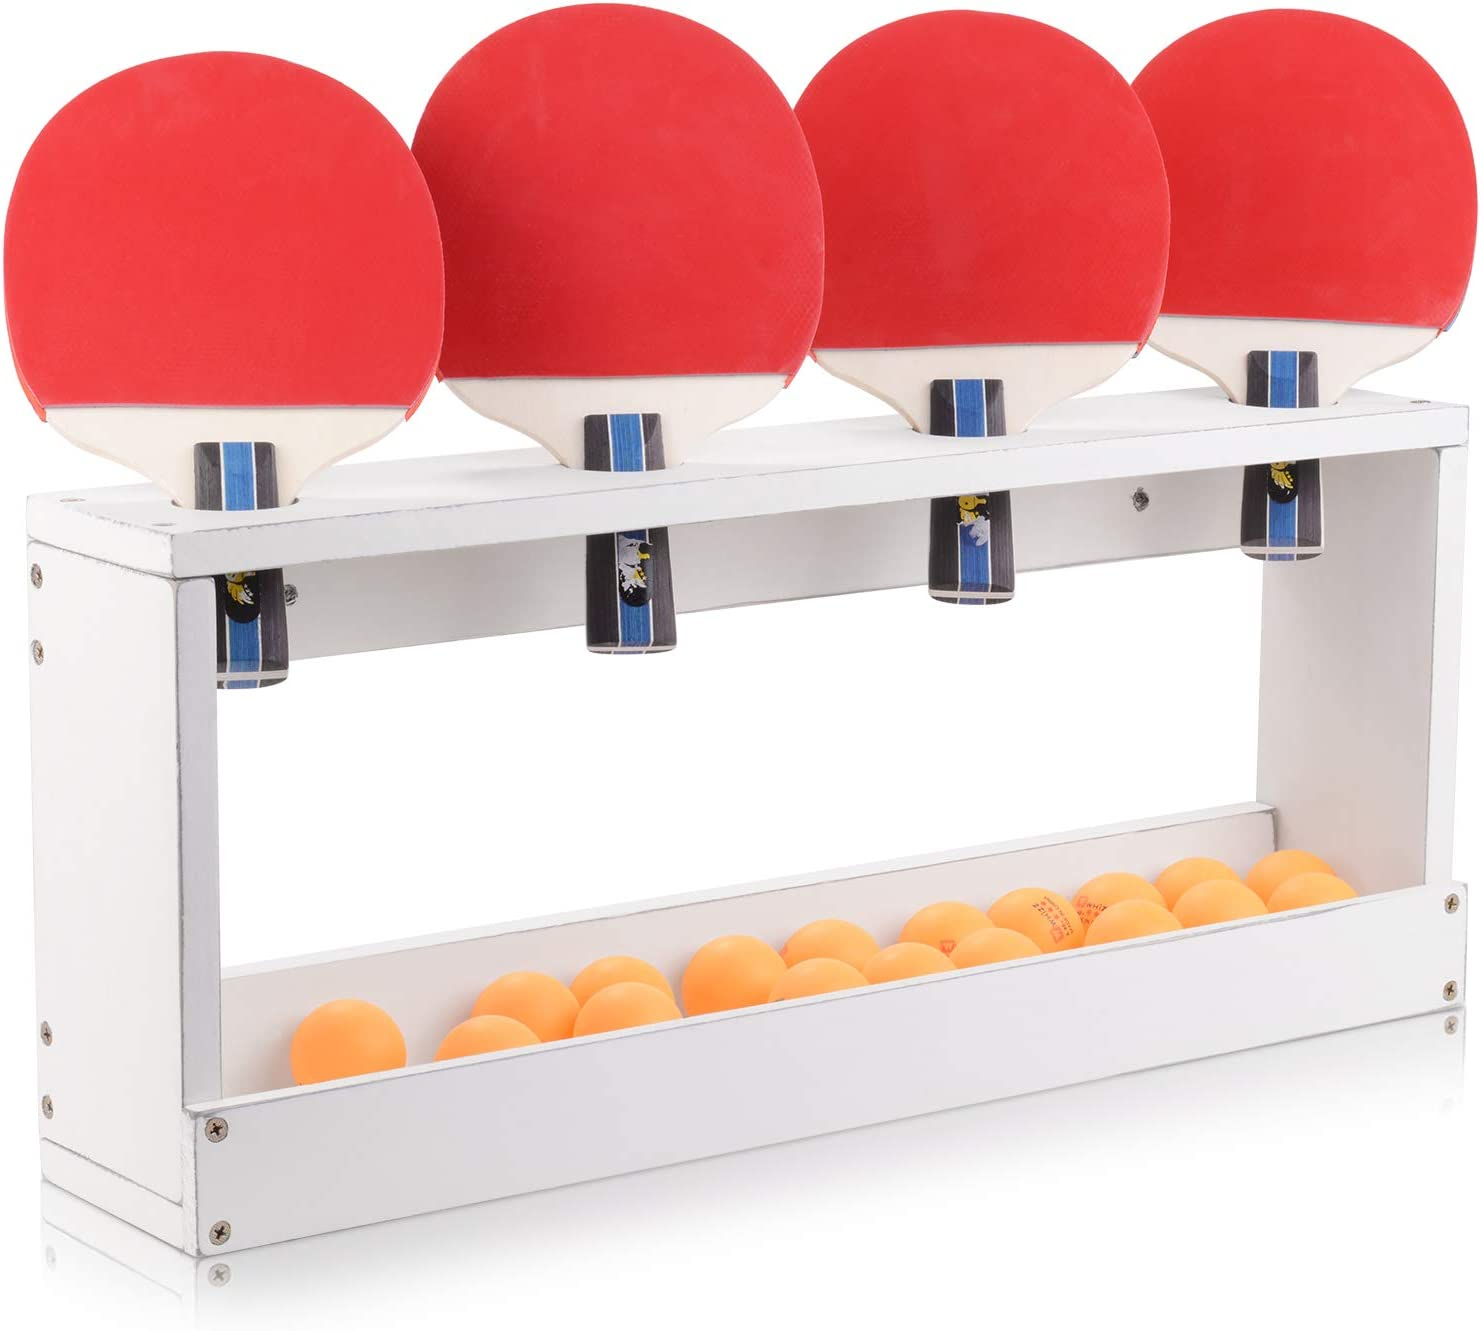 ikkle Ping Pong cheap Paddle Storage Racket Table San Diego Mall Tennis Display Rack